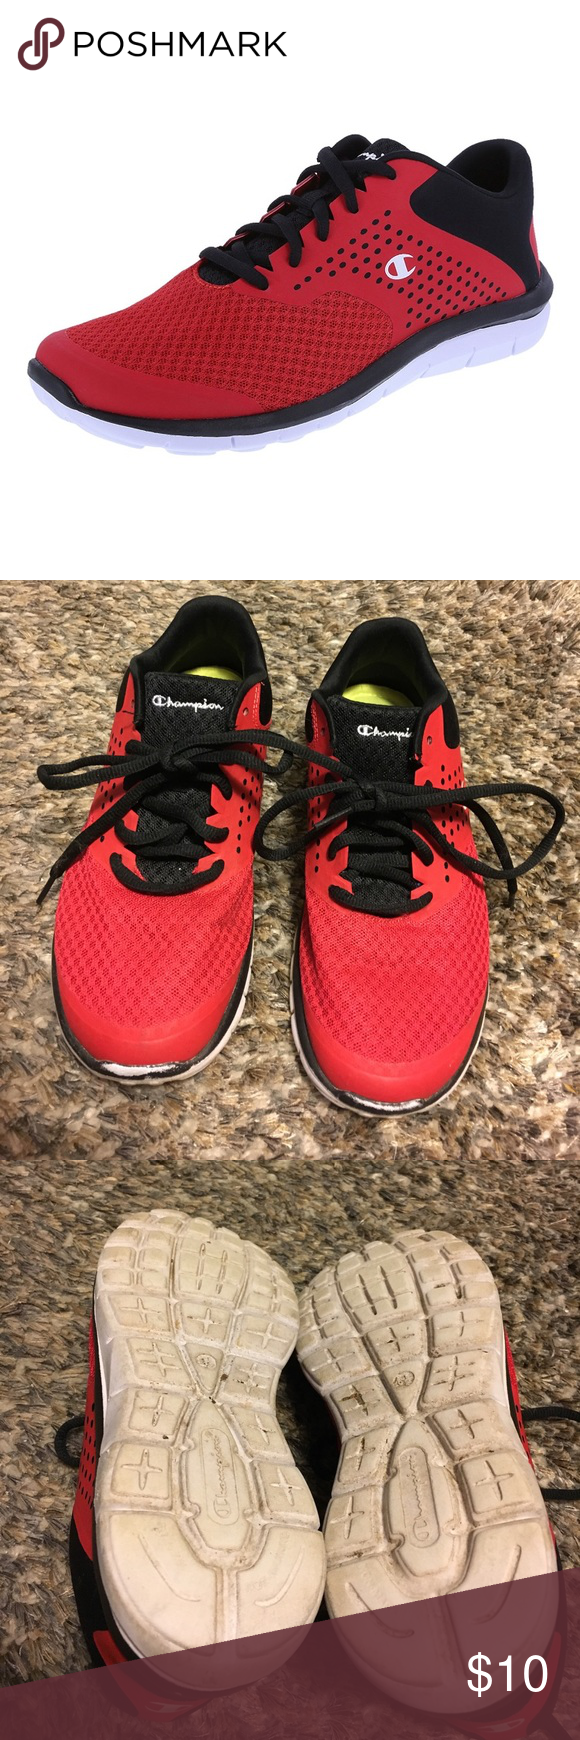 Champion Red Cross Trainer Tennis Shoes